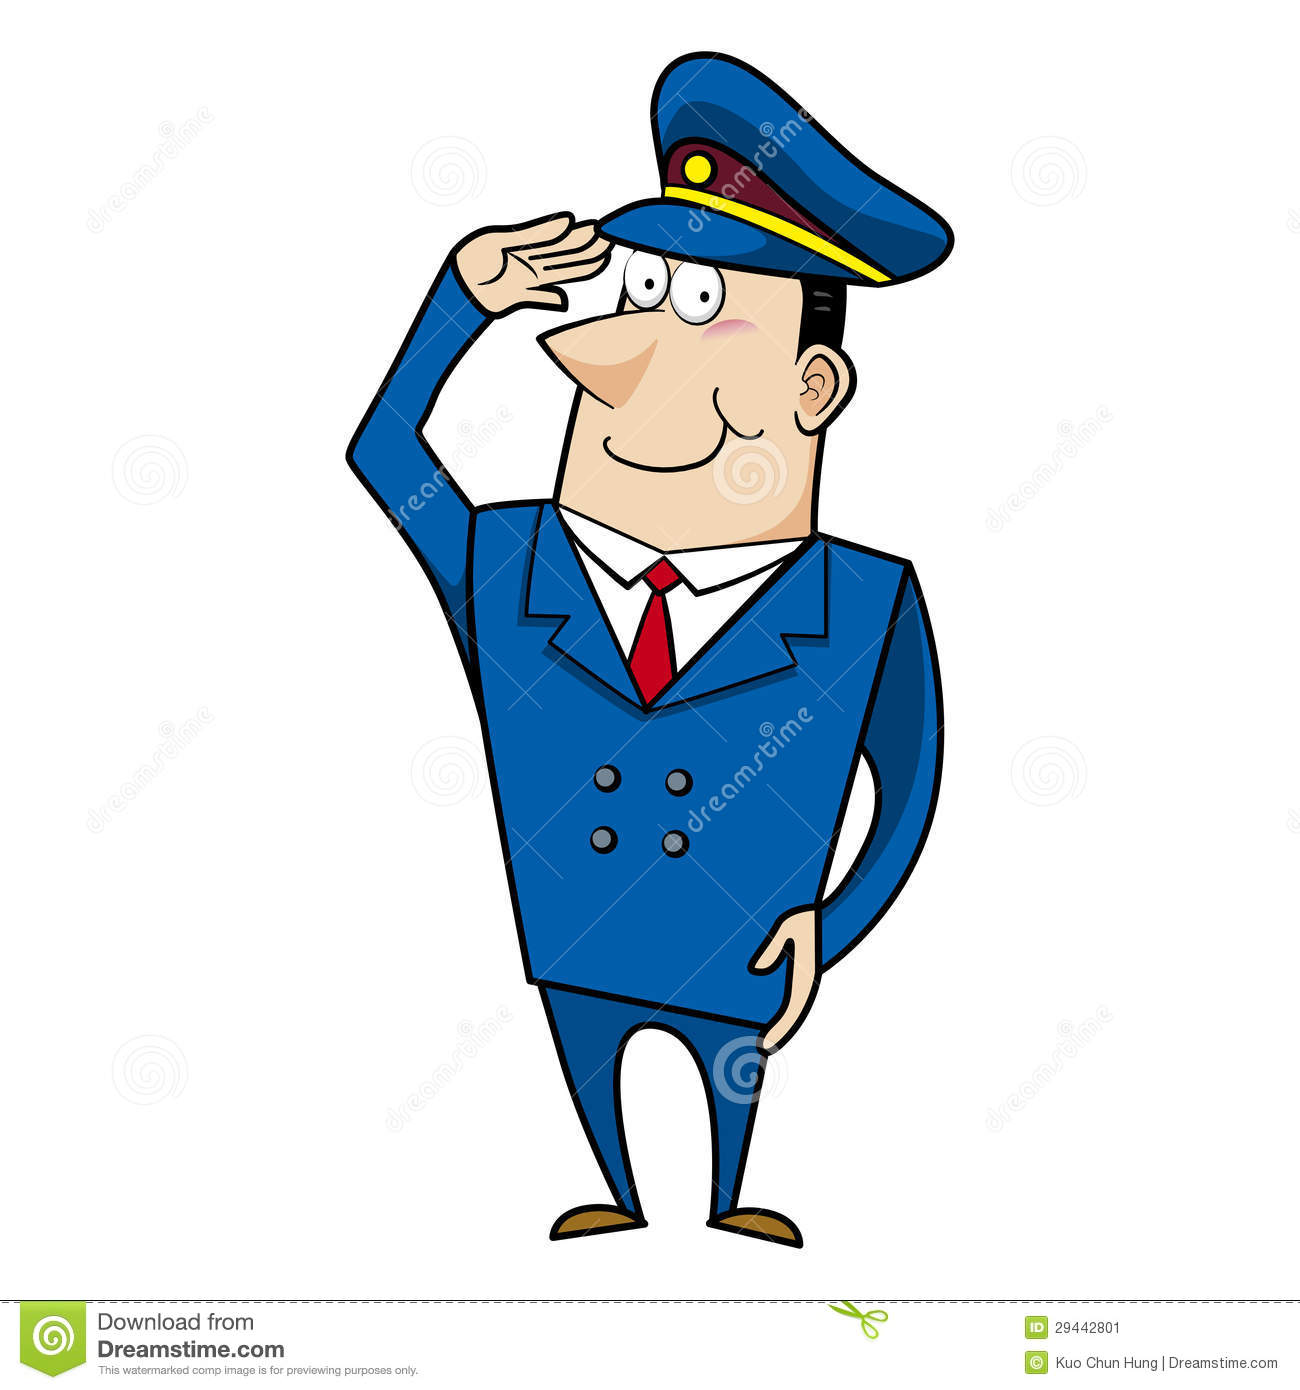 Male Cartoon Police Officer Stock Image - Image: 29442801